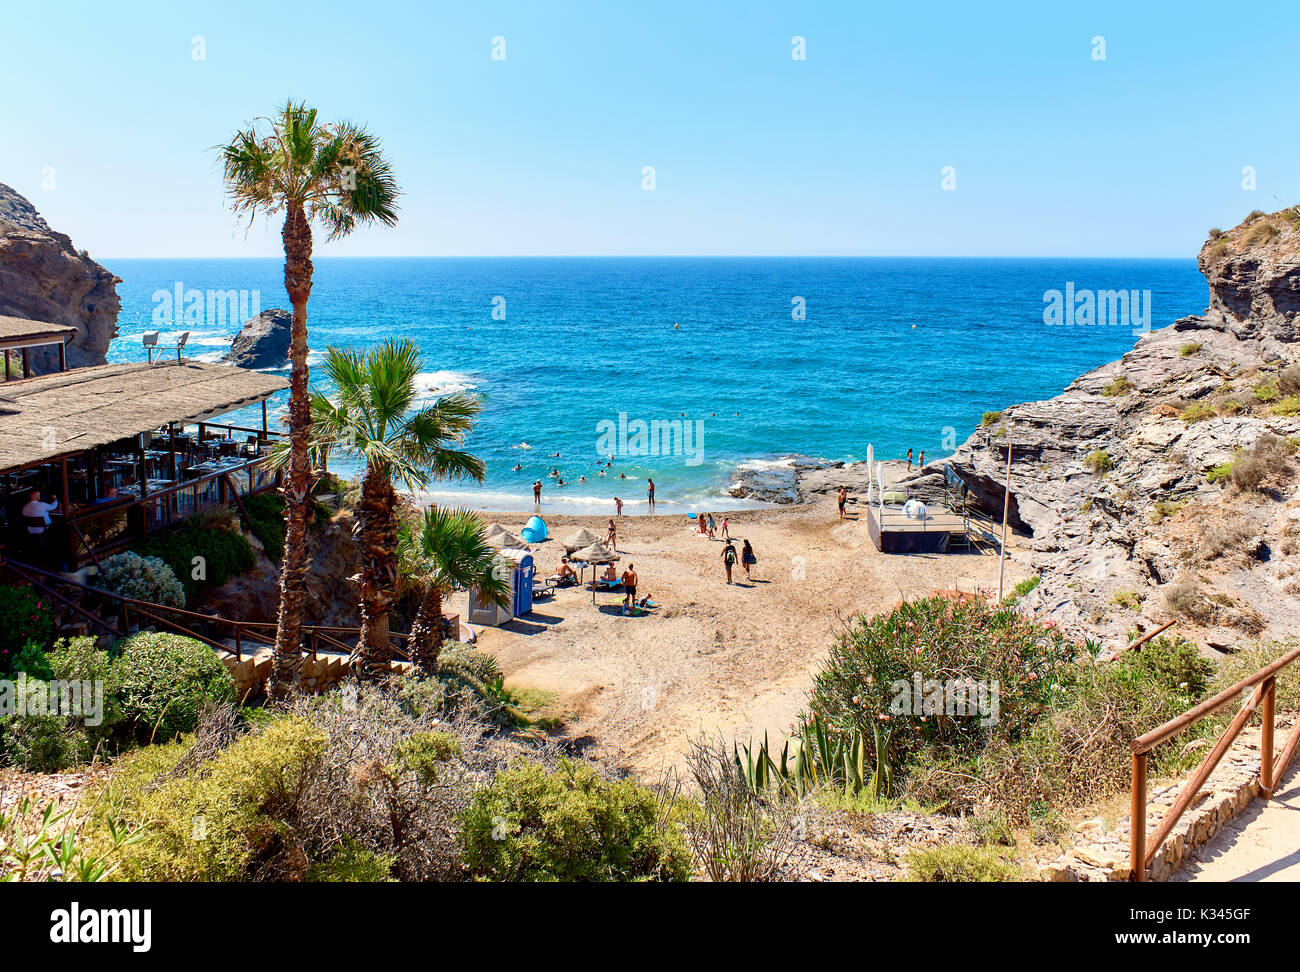 Picturesque Cala del Barco beach. Cartagena, Costa Blanca. Spain Stock Photo